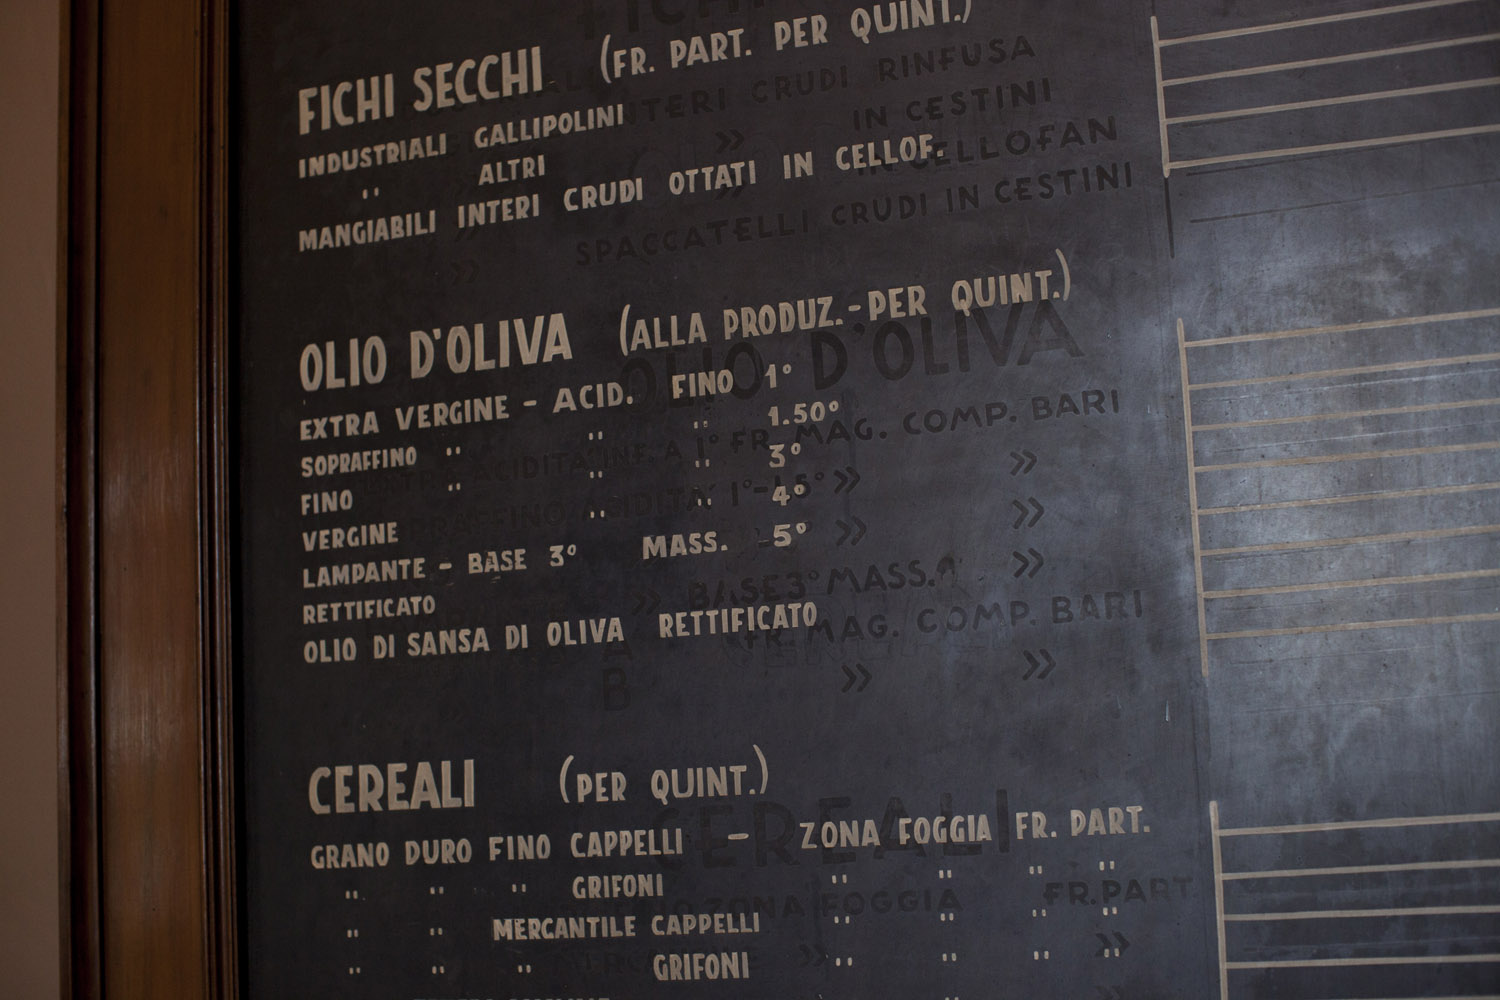 An old notice board in the Chamber of Commerce of Bari, where the price of olive oil is set every Tuesday morning, shows the different quality categories for agricoltural products. The price difference between these categories is the primary factor in determining the type of cultivation chosen by farmers. (2018)